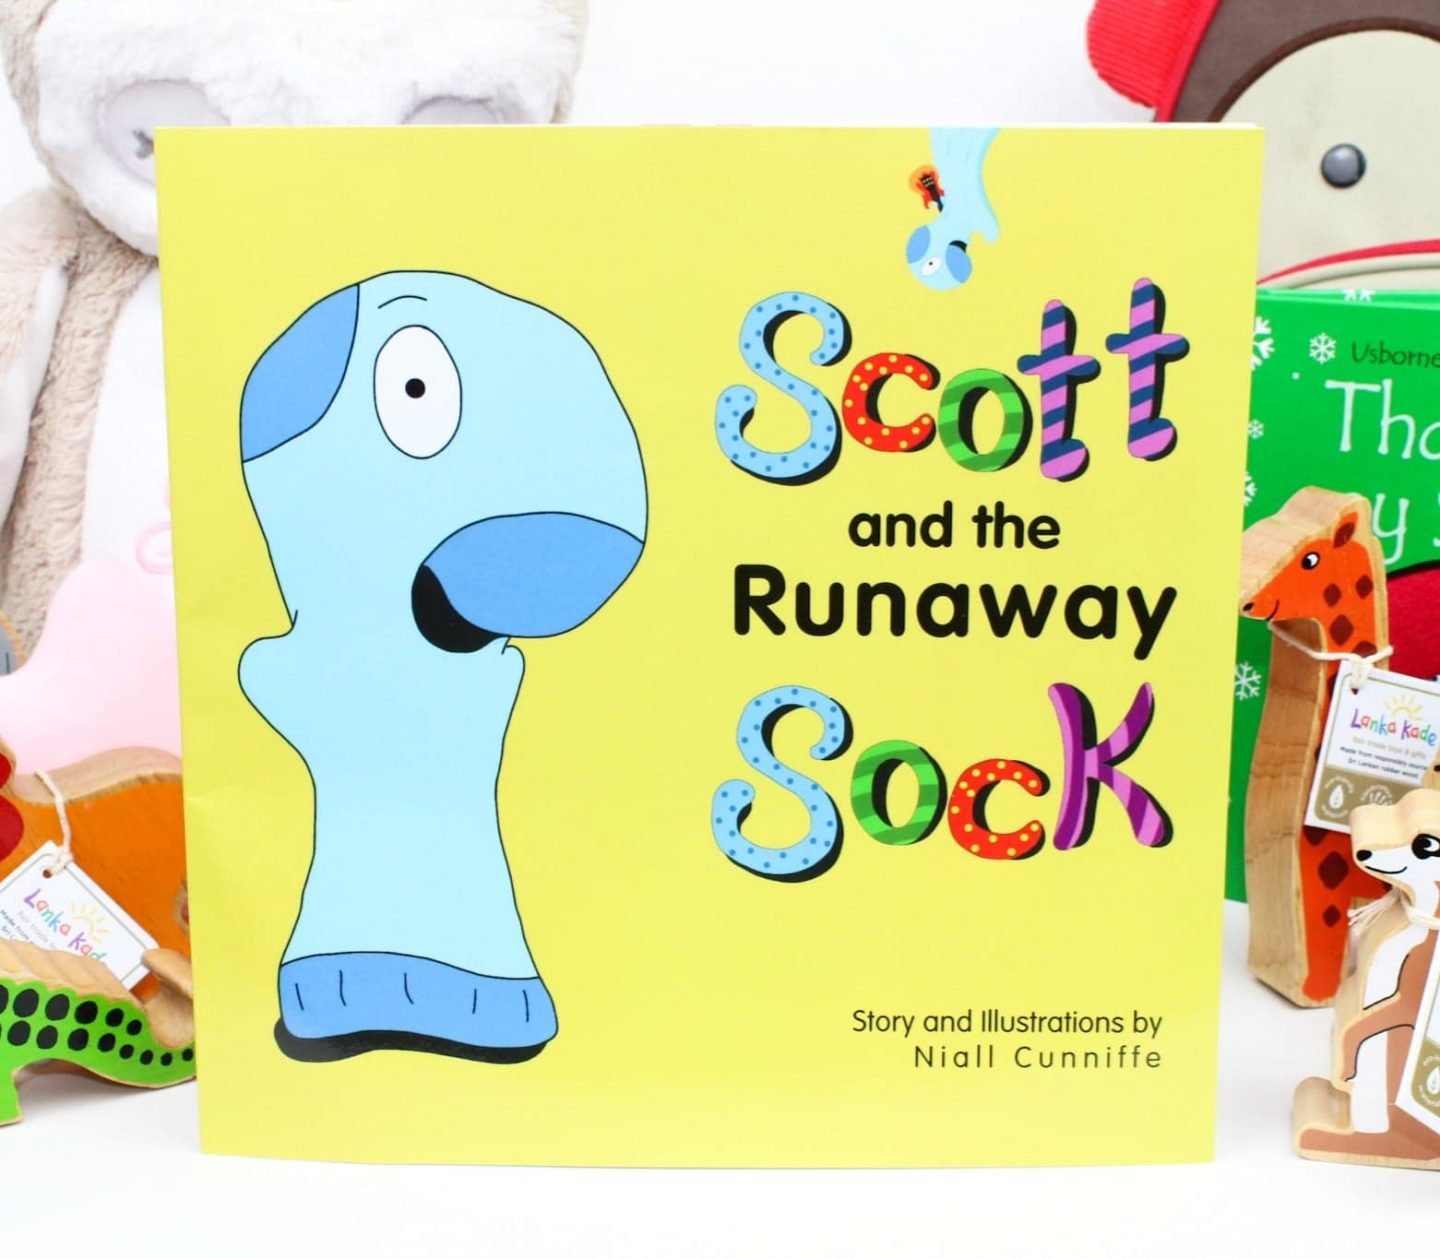 Toddler's Christmas Gift Guide With Scott and the Runaway Sock